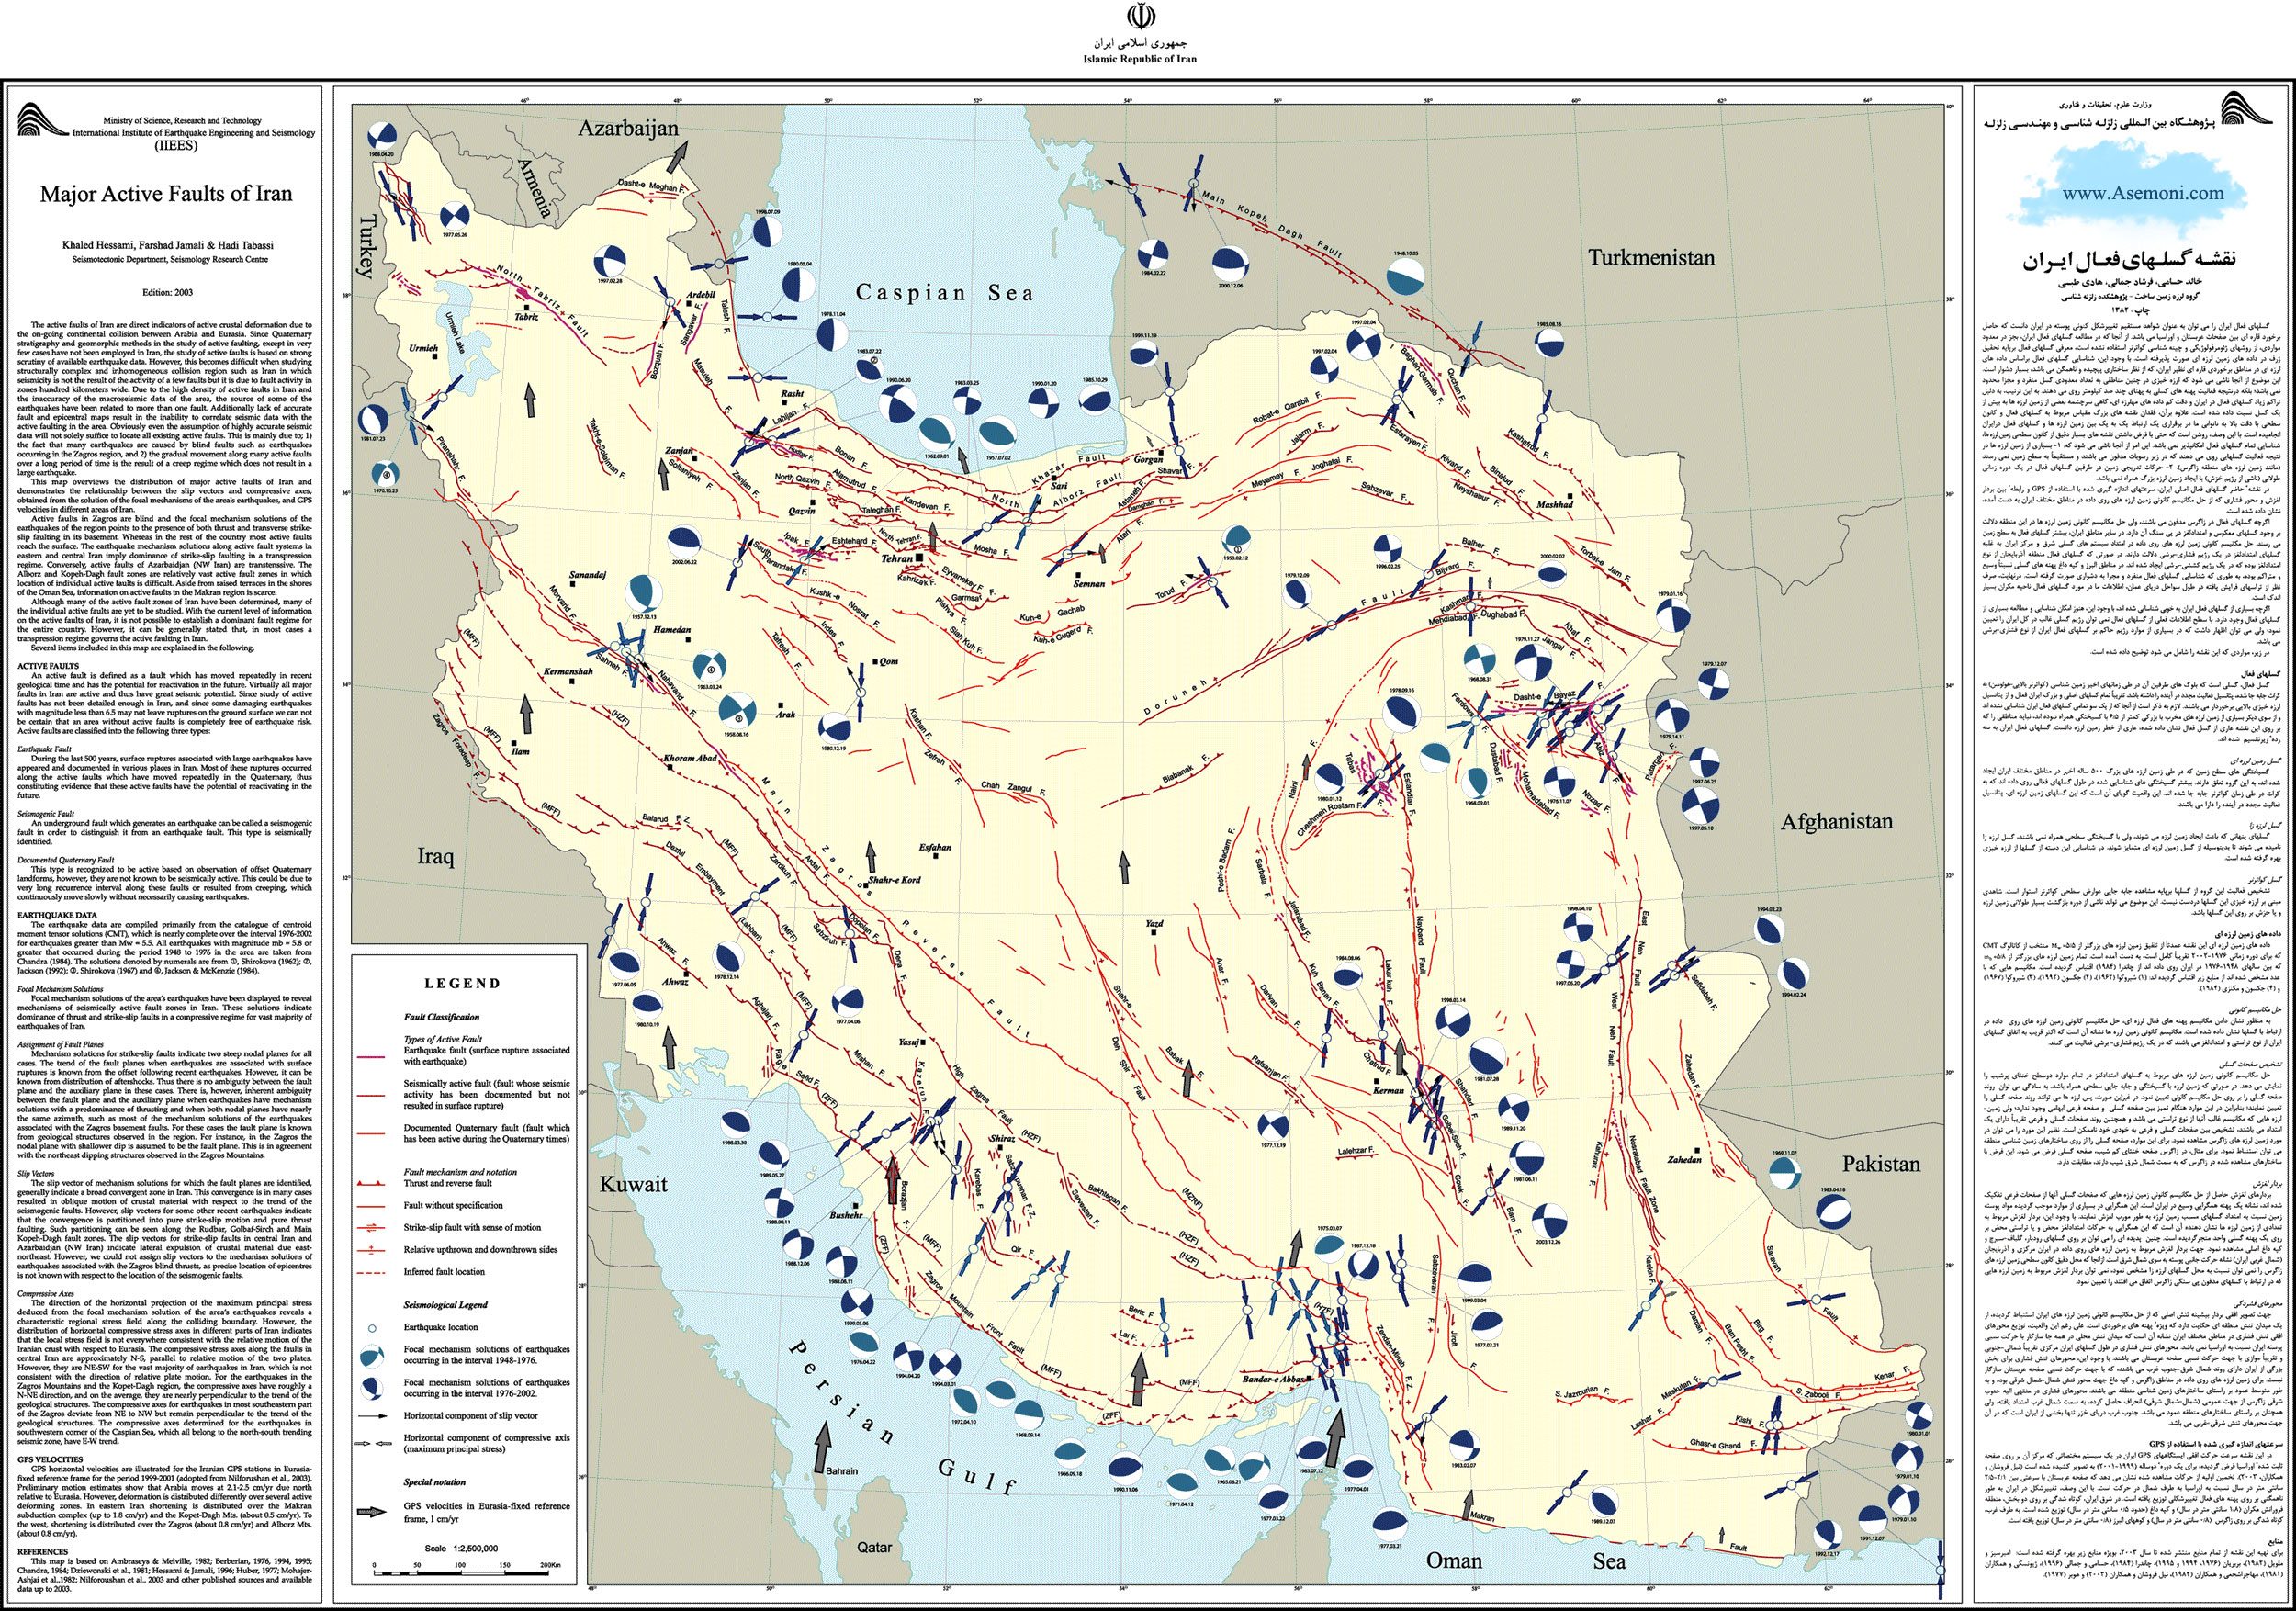 http://s5.picofile.com/file/8119385368/iran_faults_map.jpg